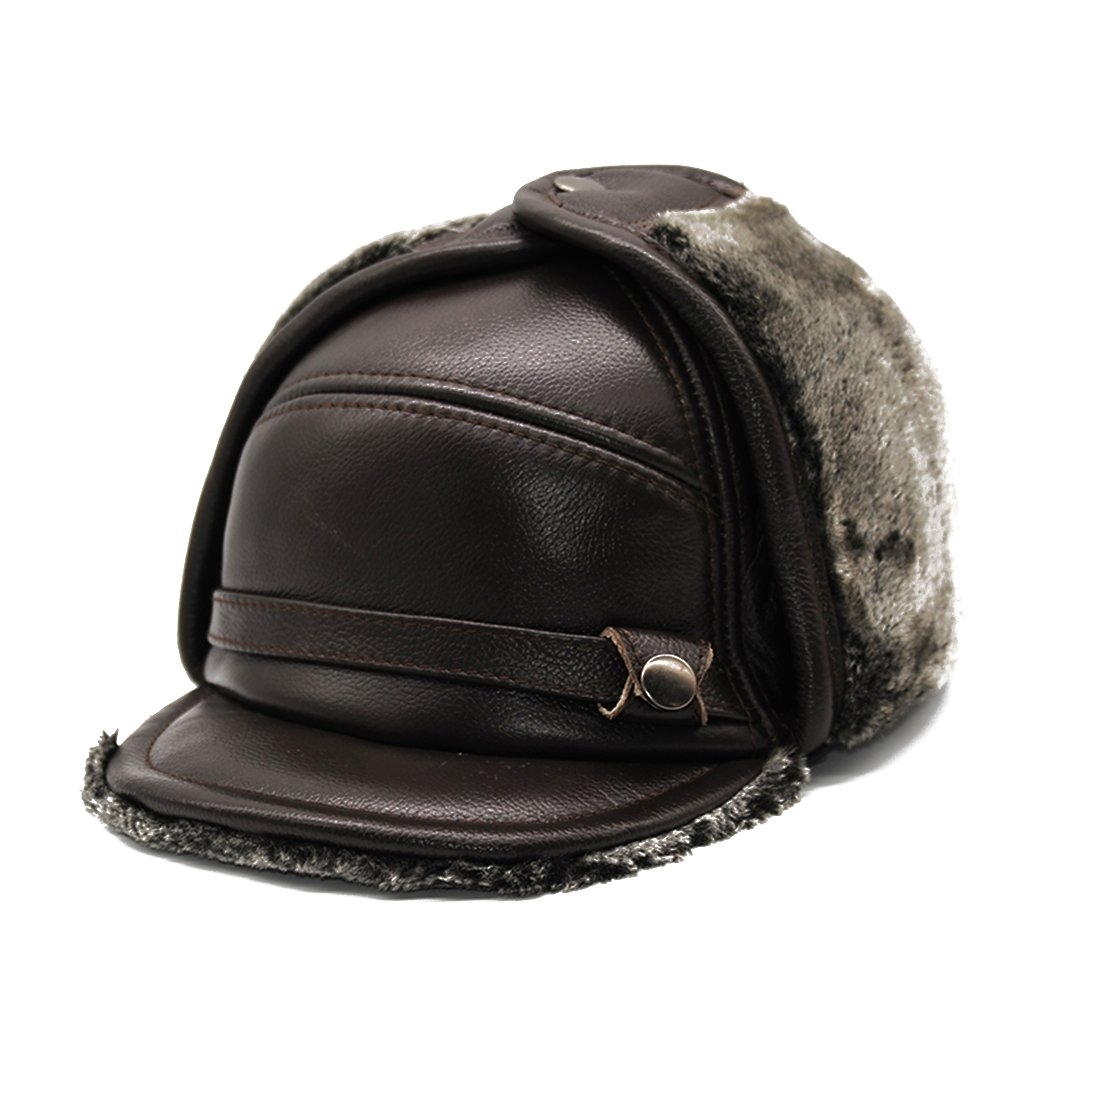 Maylian Winter Warm Brown Genuine Leather Mens Bomber Hat Cap (M)